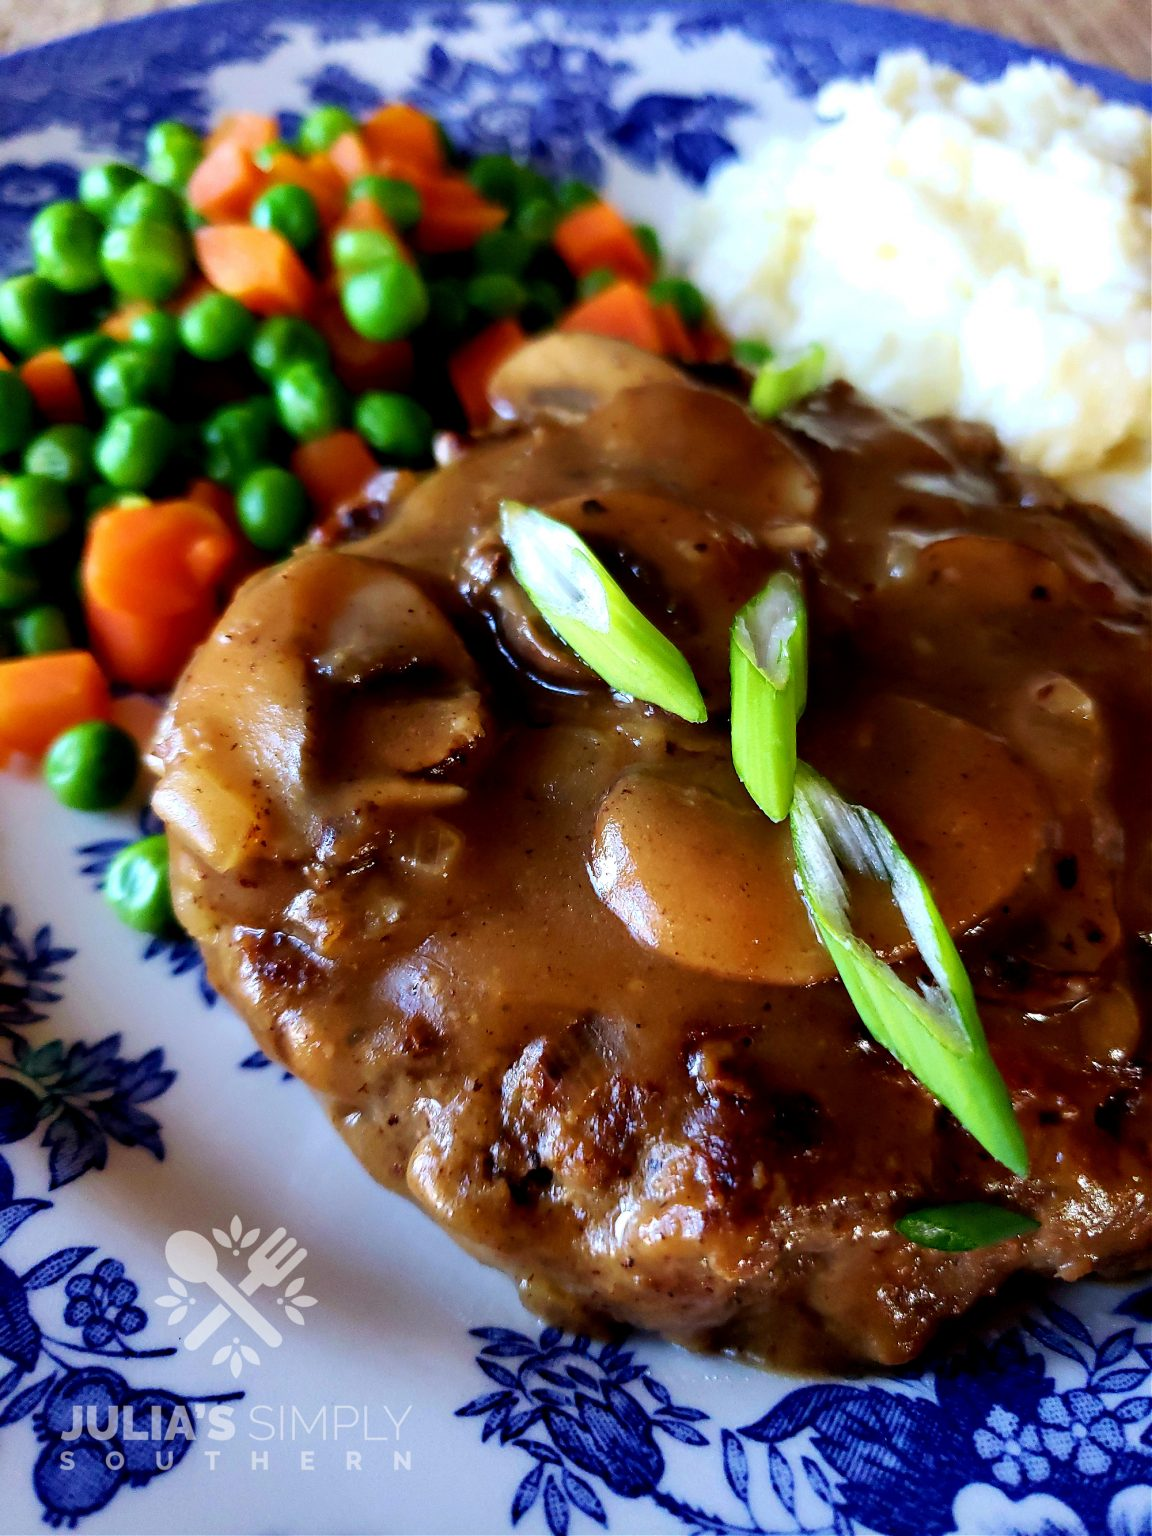 Southern Salisbury Steak by Julia's Simply Southern - Weekend Potluck 465